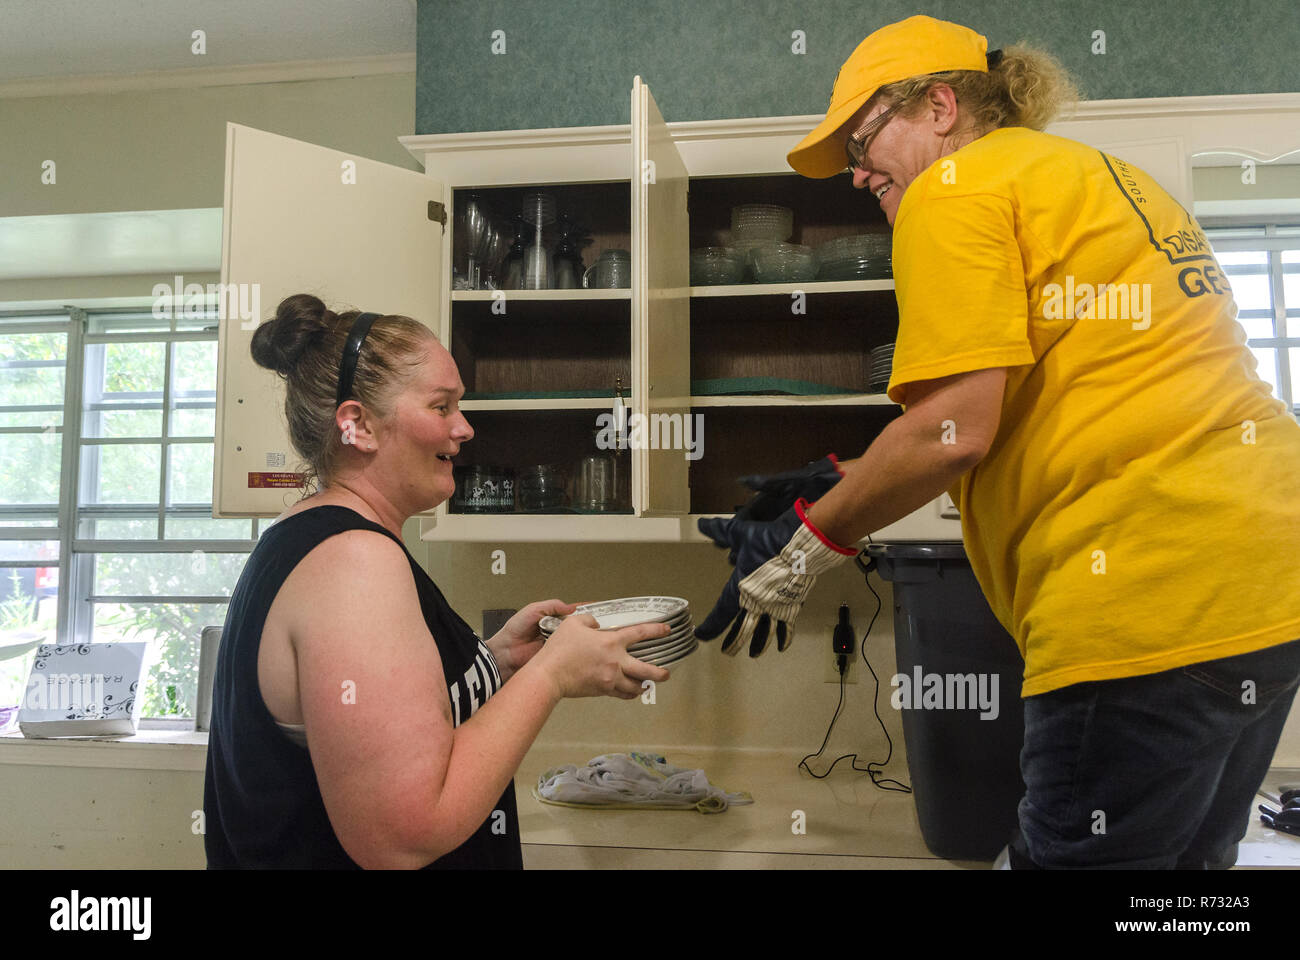 A Southern Baptist Disaster Relief volunteer helps a flood victim clean out cabinets after a flood in Denham Springs, Louisiana. - Stock Image